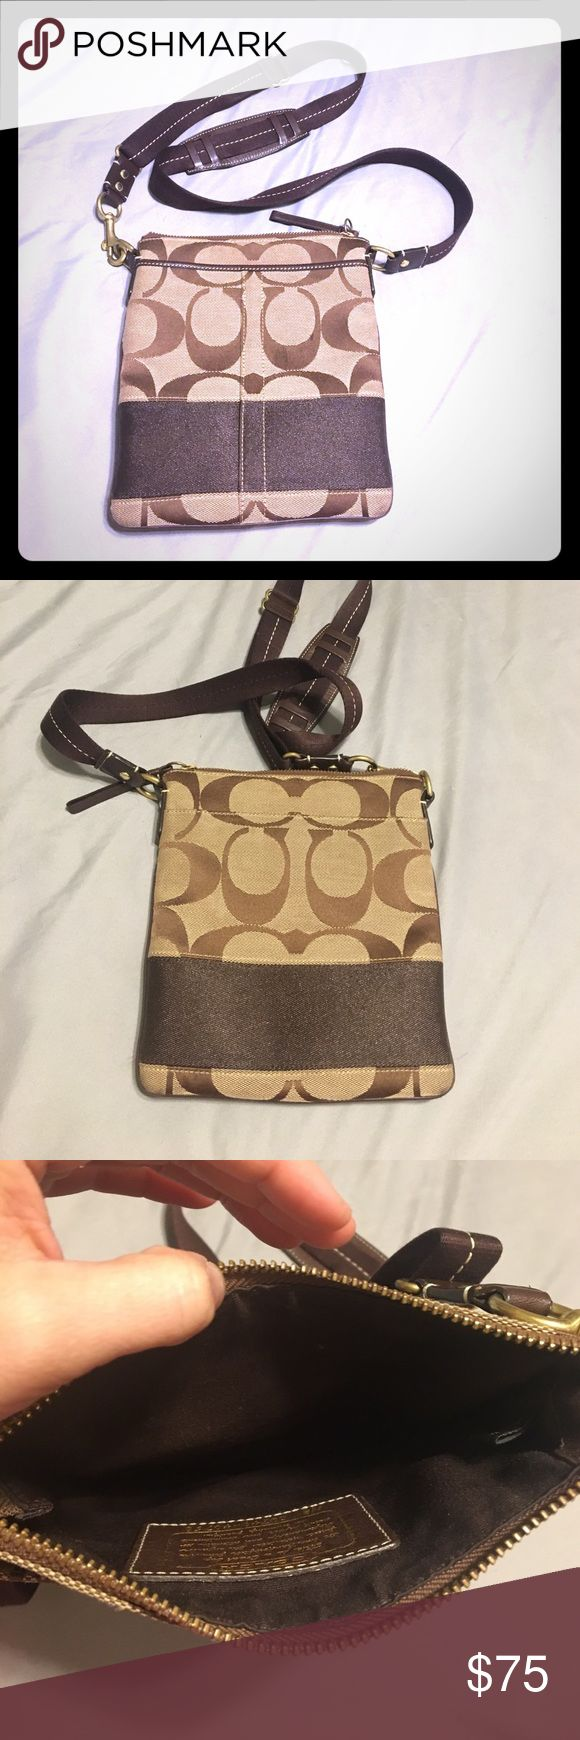 Coach Swingpack in brown Coach swingpack in brown, great condition, hardly used. Has one big pocket with zipper and two additional pockets (without zipper) on the front and back of the bag. Coach Bags Crossbody Bags